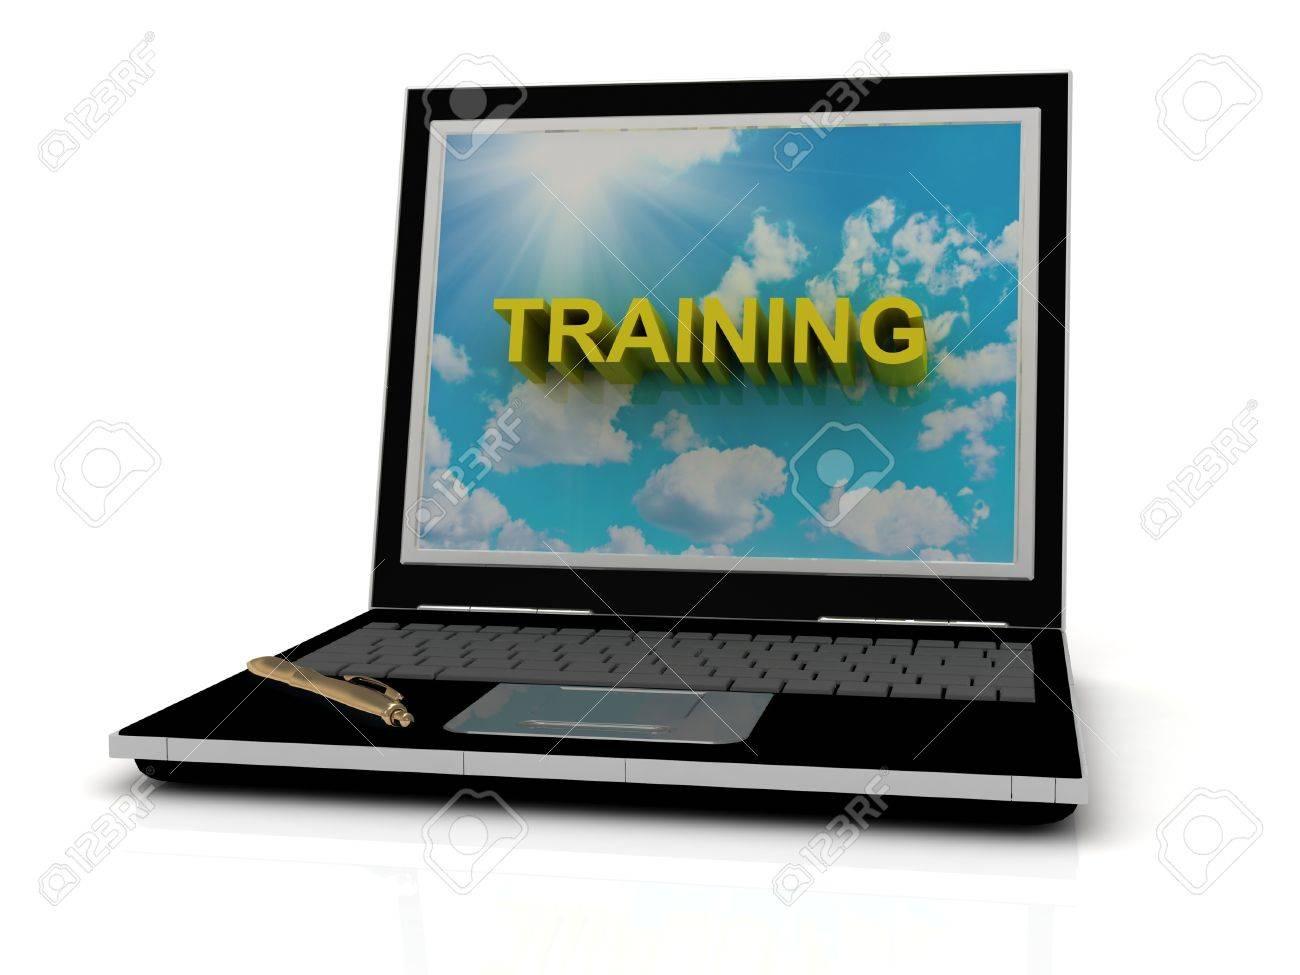 TRAINING sign on laptop screen of the yellow letters on a background of sky, sun and clouds Stock Photo - 14860836